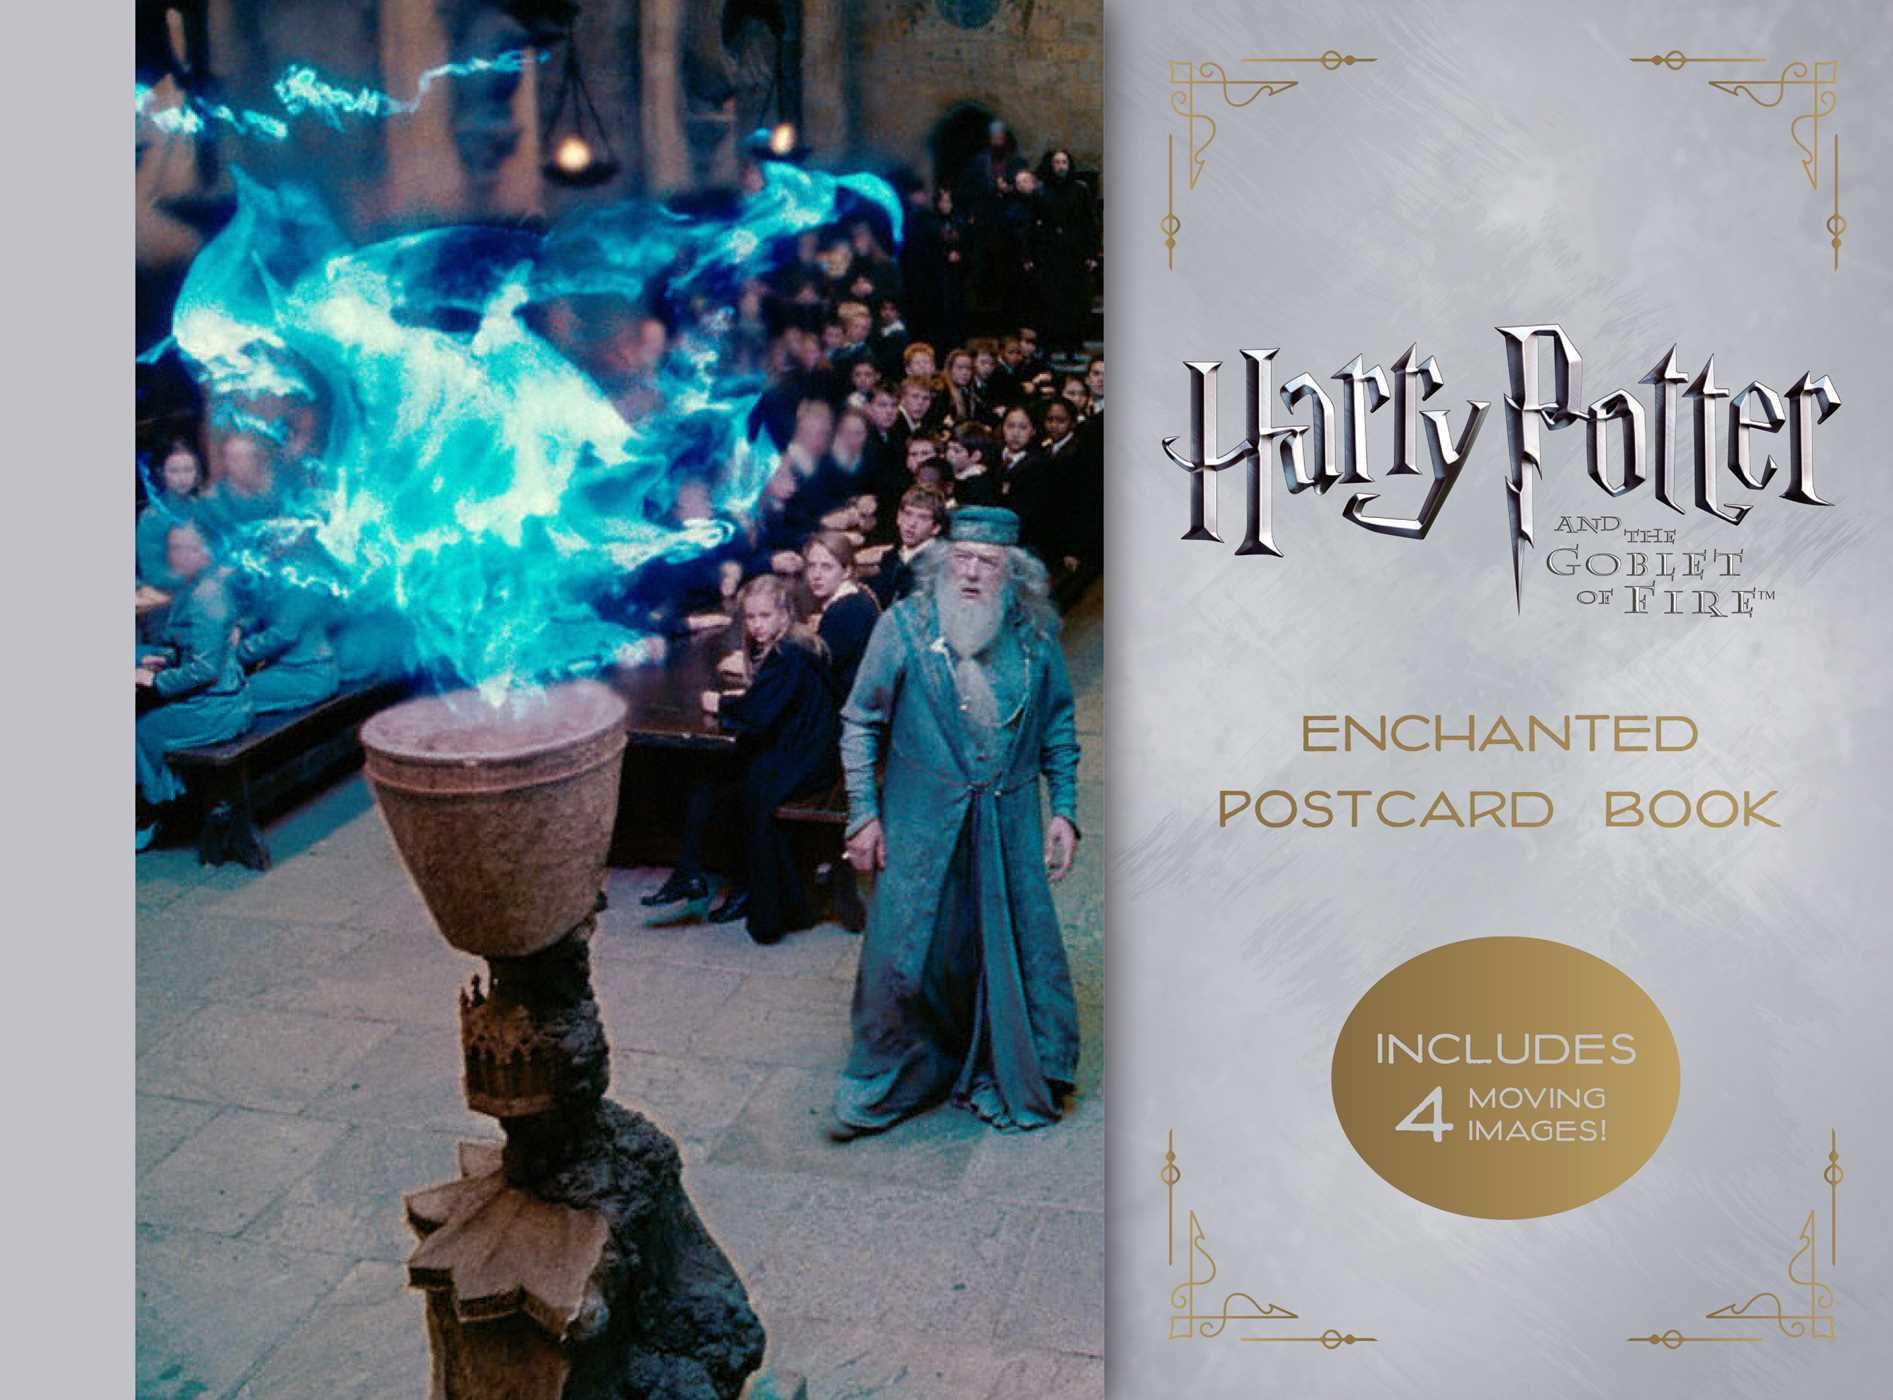 Harry Potter and the Goblet of Fire Enchanted Postcard Book